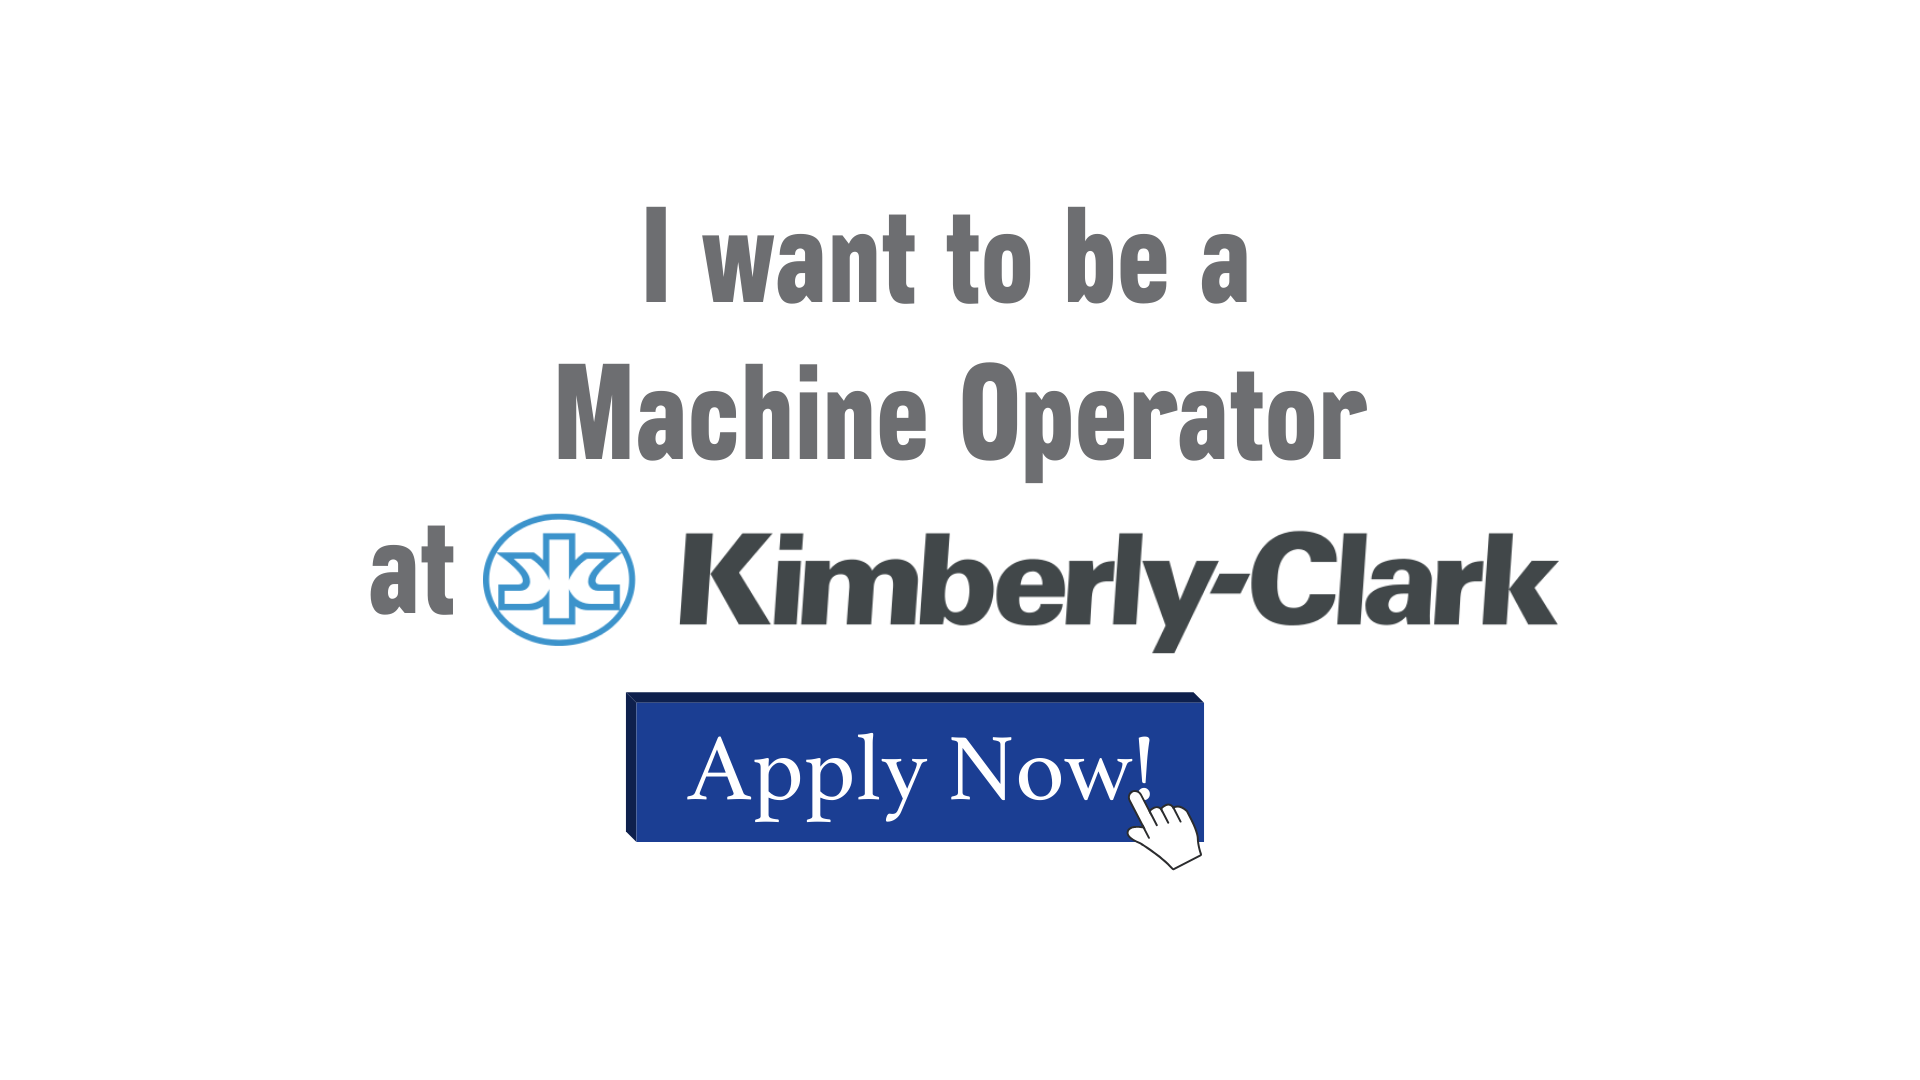 I want to be a Machine Operator at Kimberly-Clark in Hendersonville